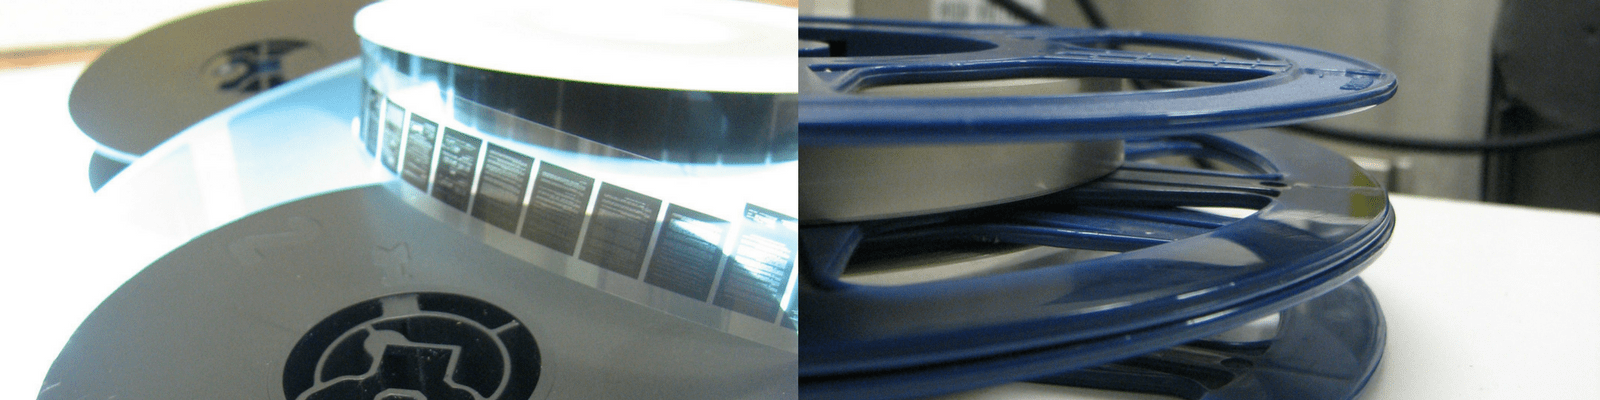 Microfilm Scanning, Duplication & Archiving Services